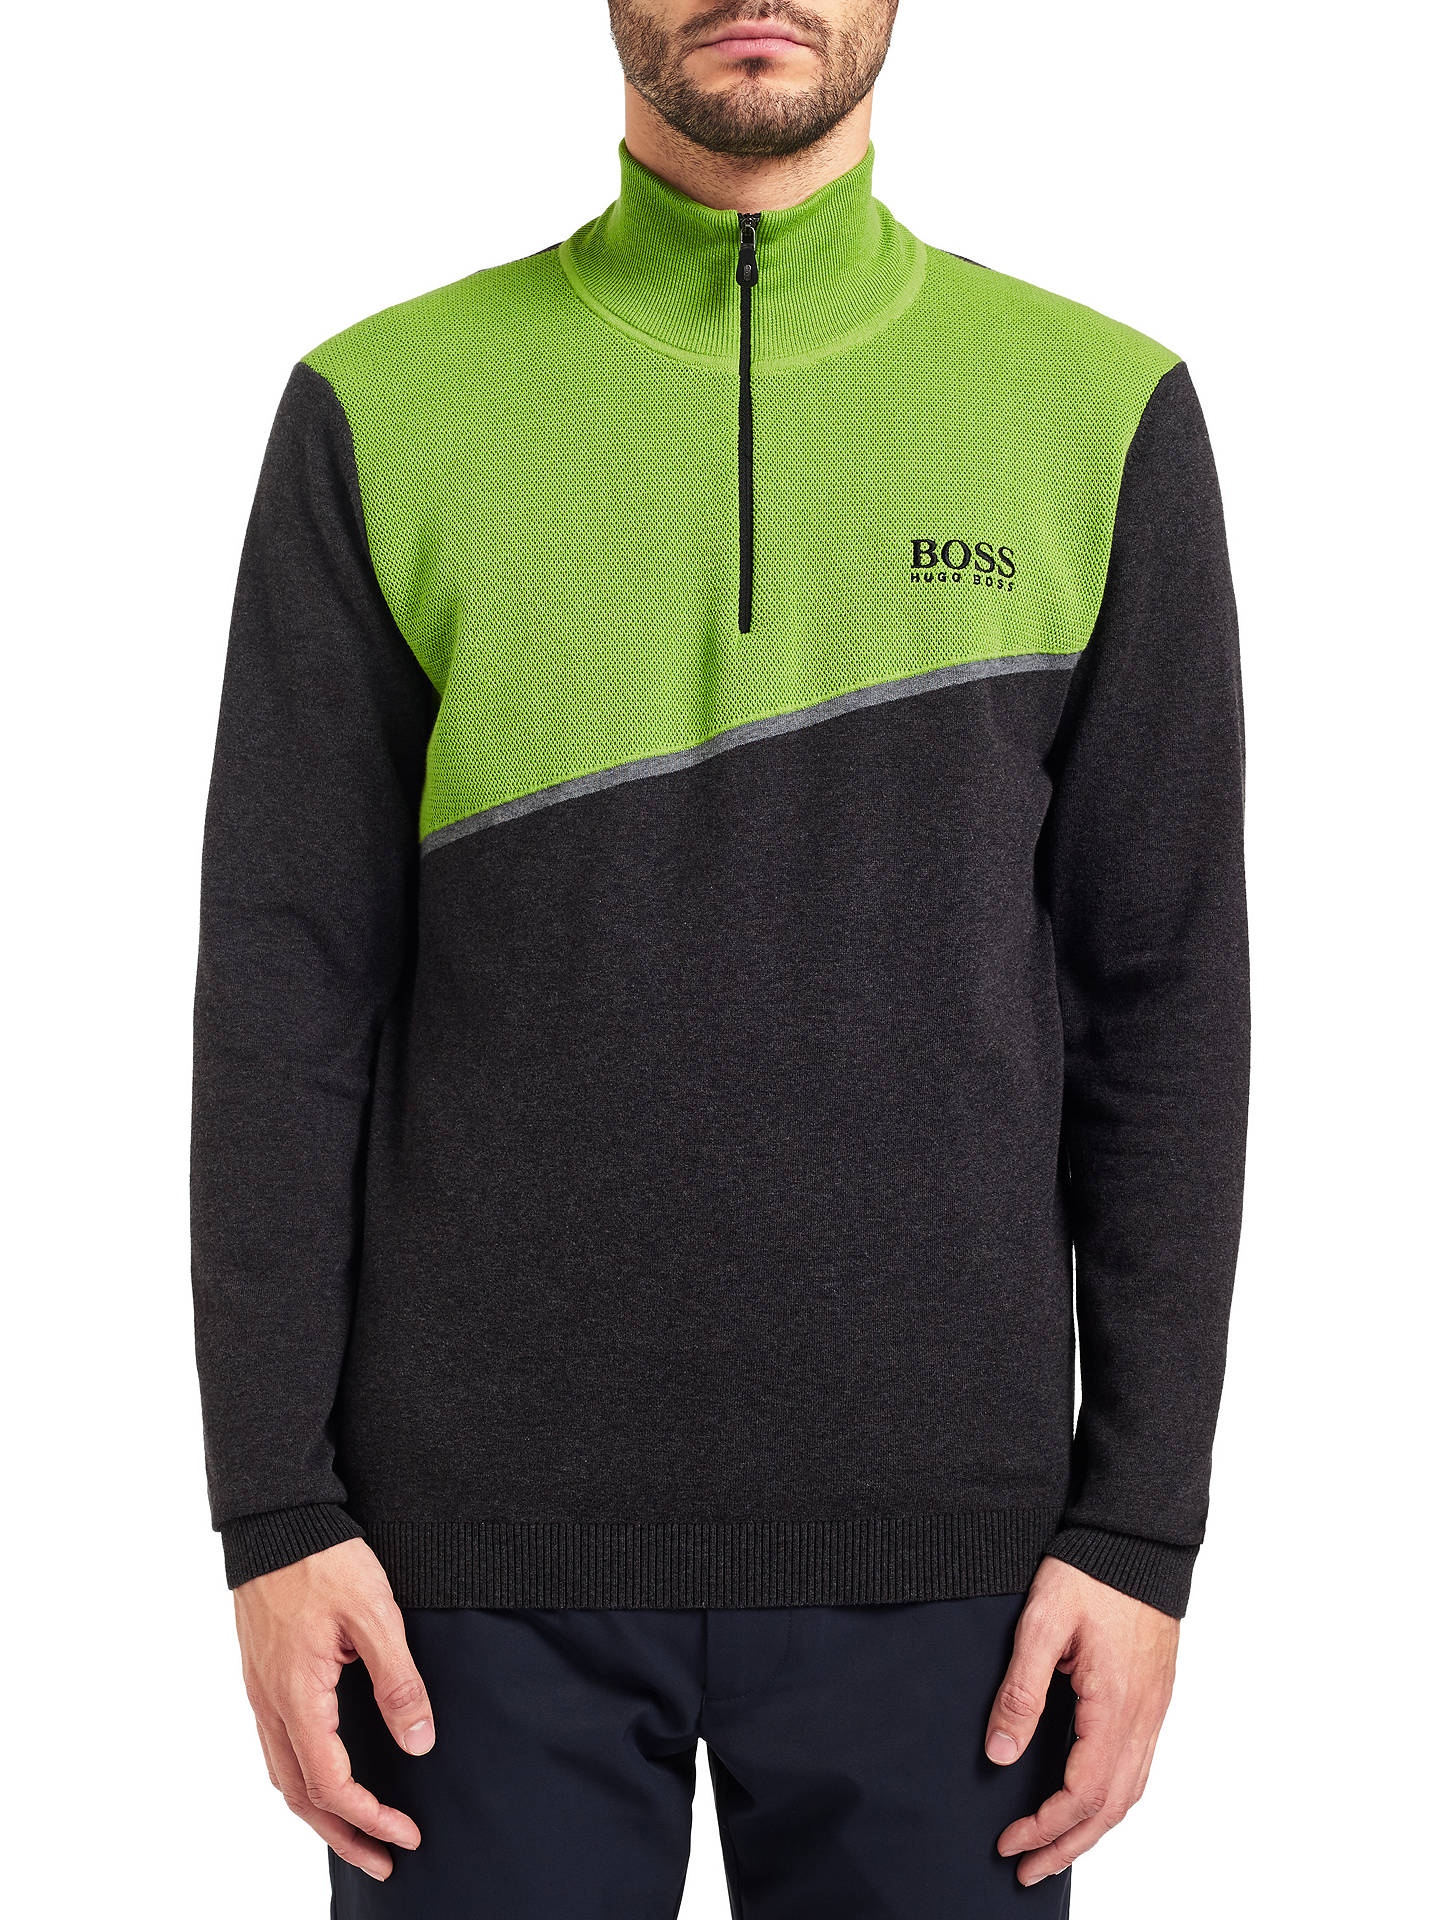 194622f9b0 Buy BOSS Green Zymor Pro Jumper, Charcoal, S Online at johnlewis.com ...